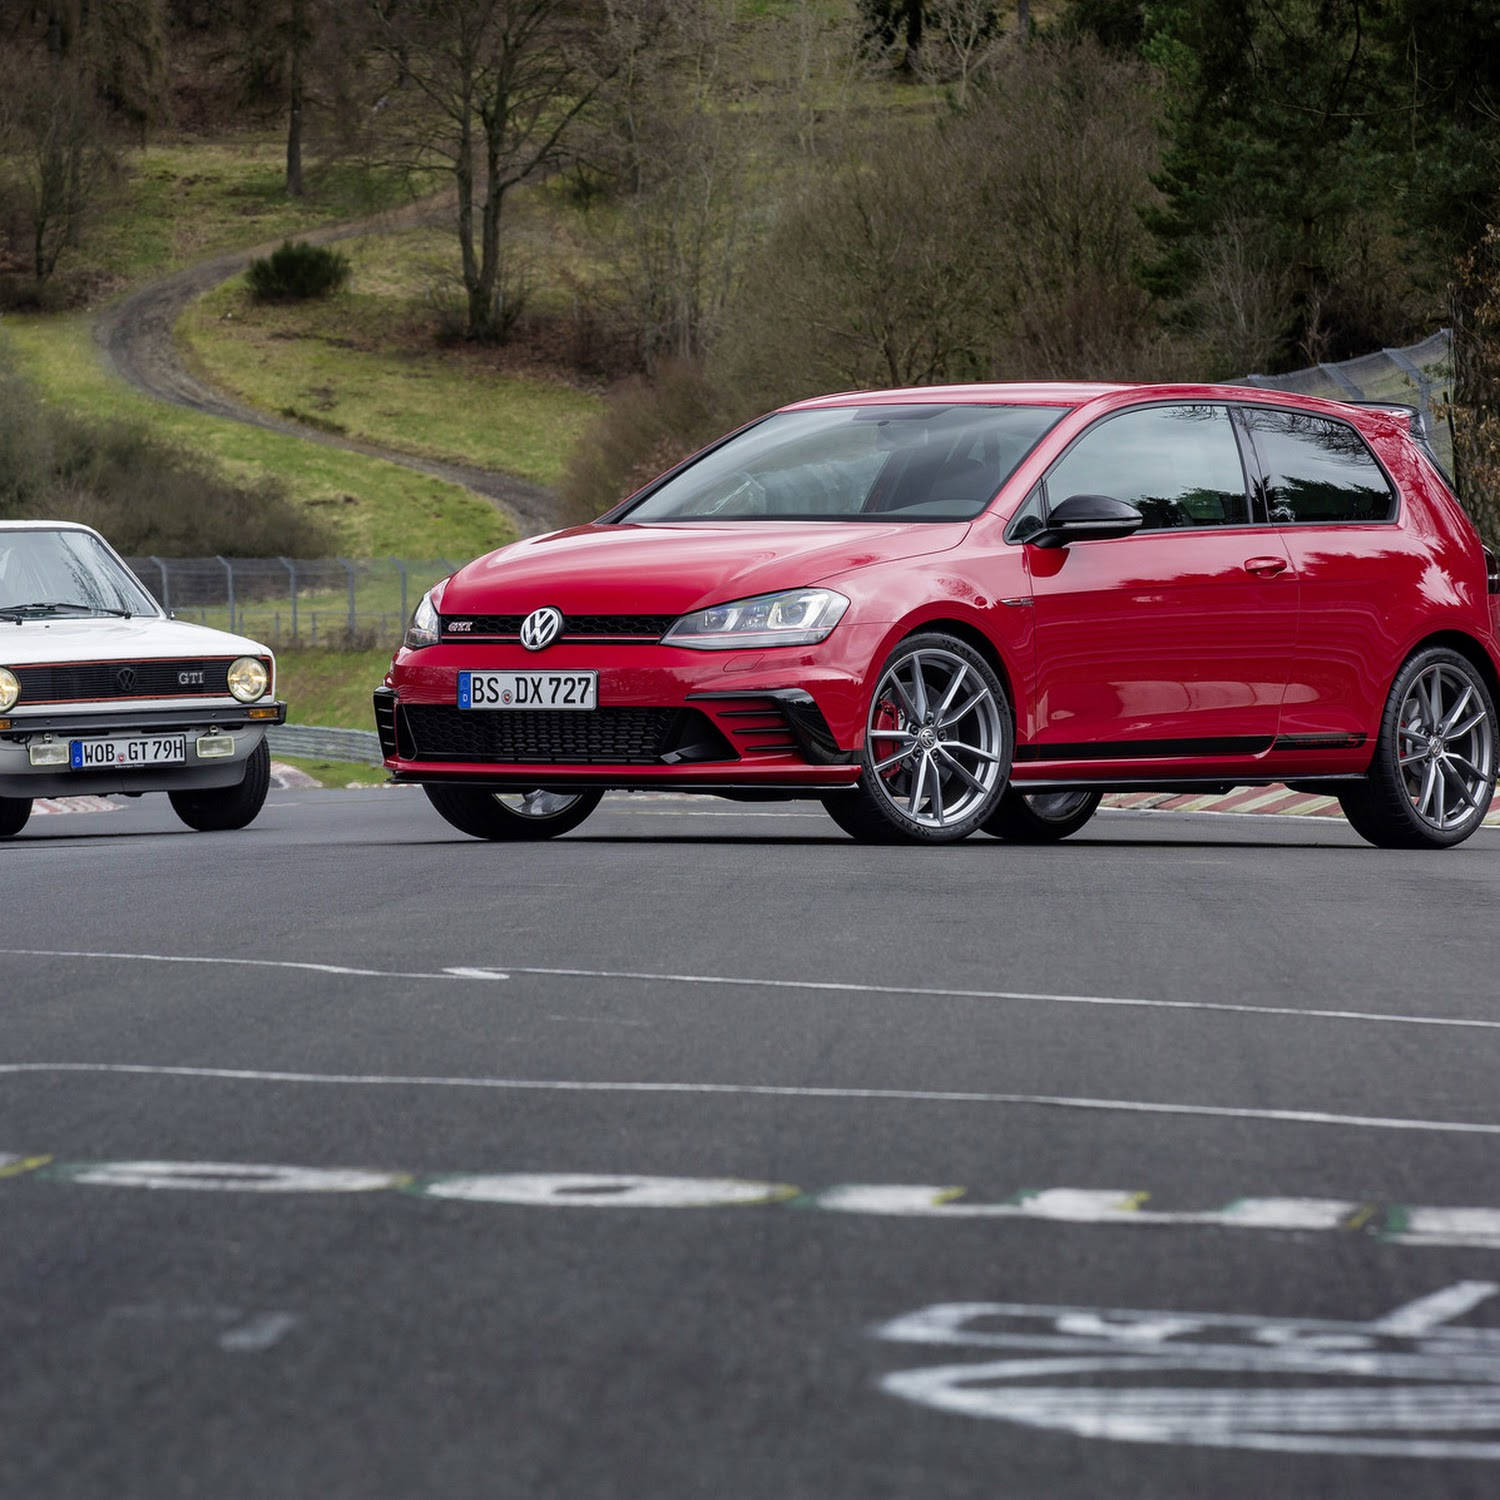 The 10 Best Fast Volkswagen Golf Models Of All Time